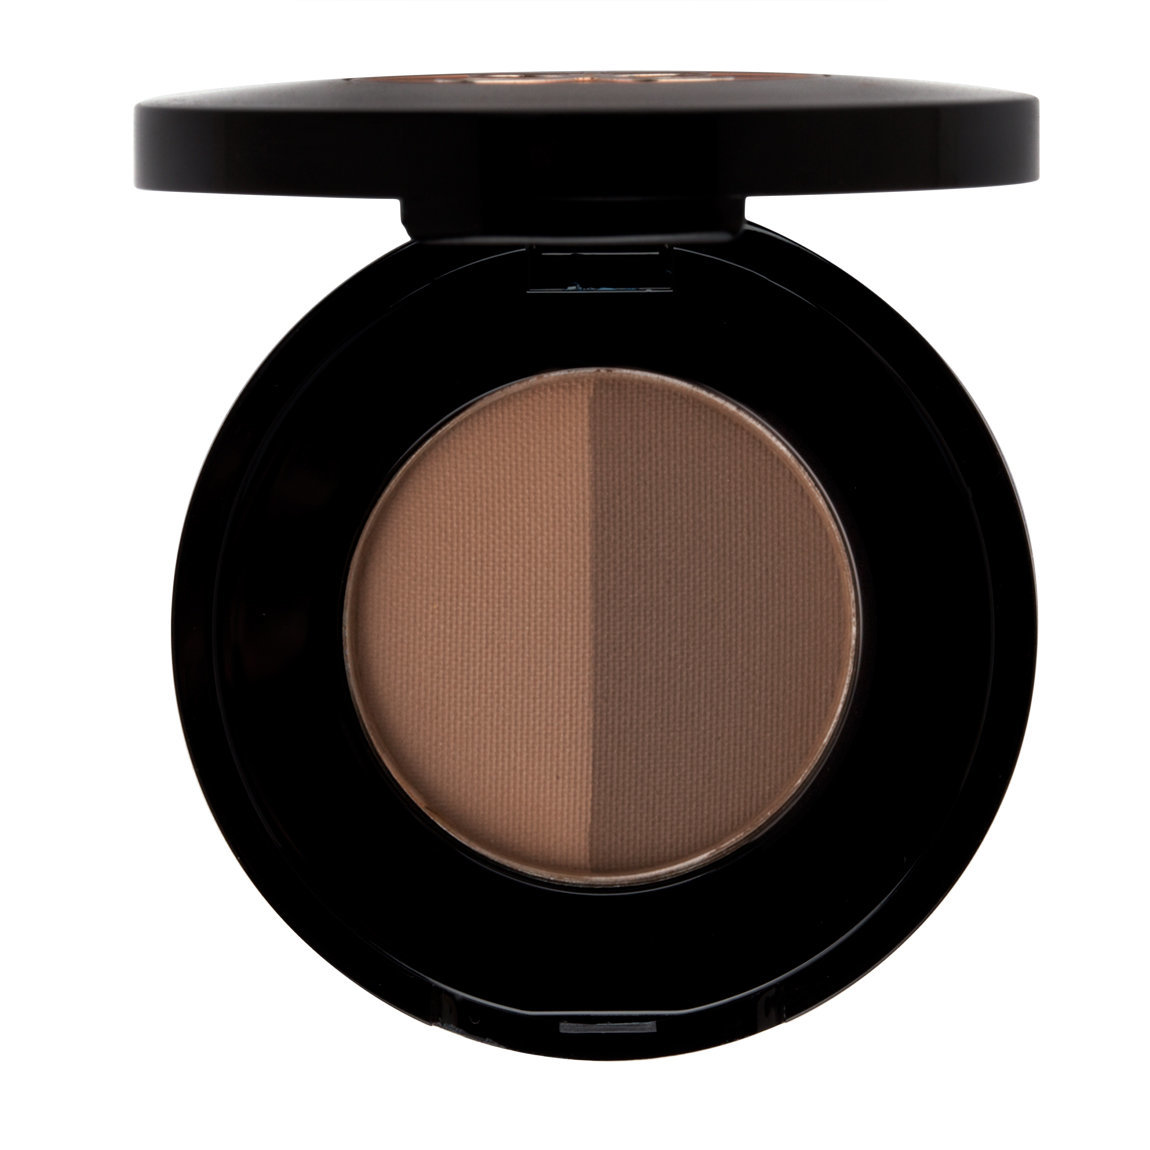 Anastasia Beverly Hills Brow Powder Duo Dark Brown product smear.